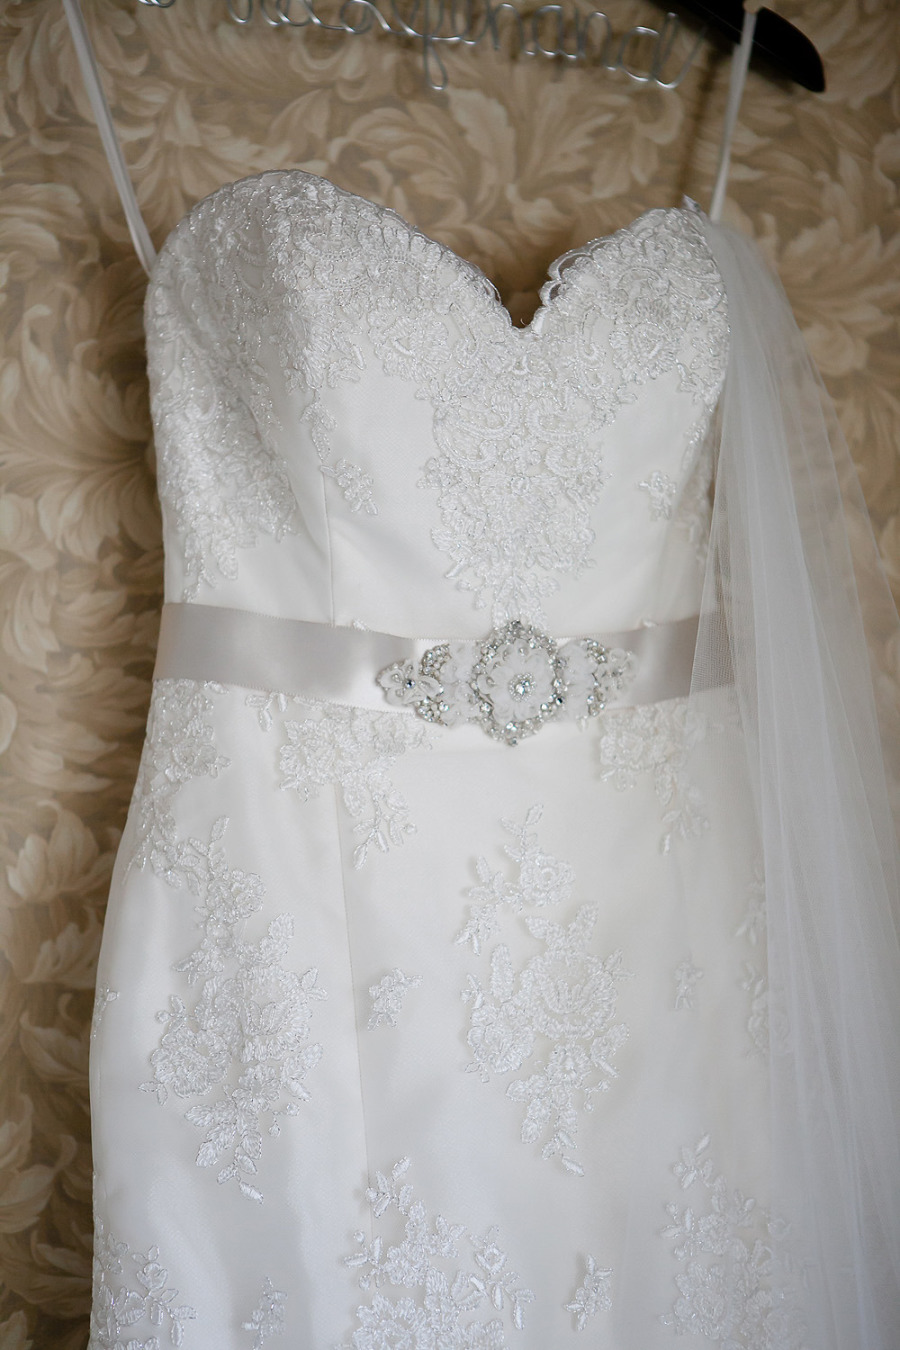 new-jersey-wedding-19-11112014-ky